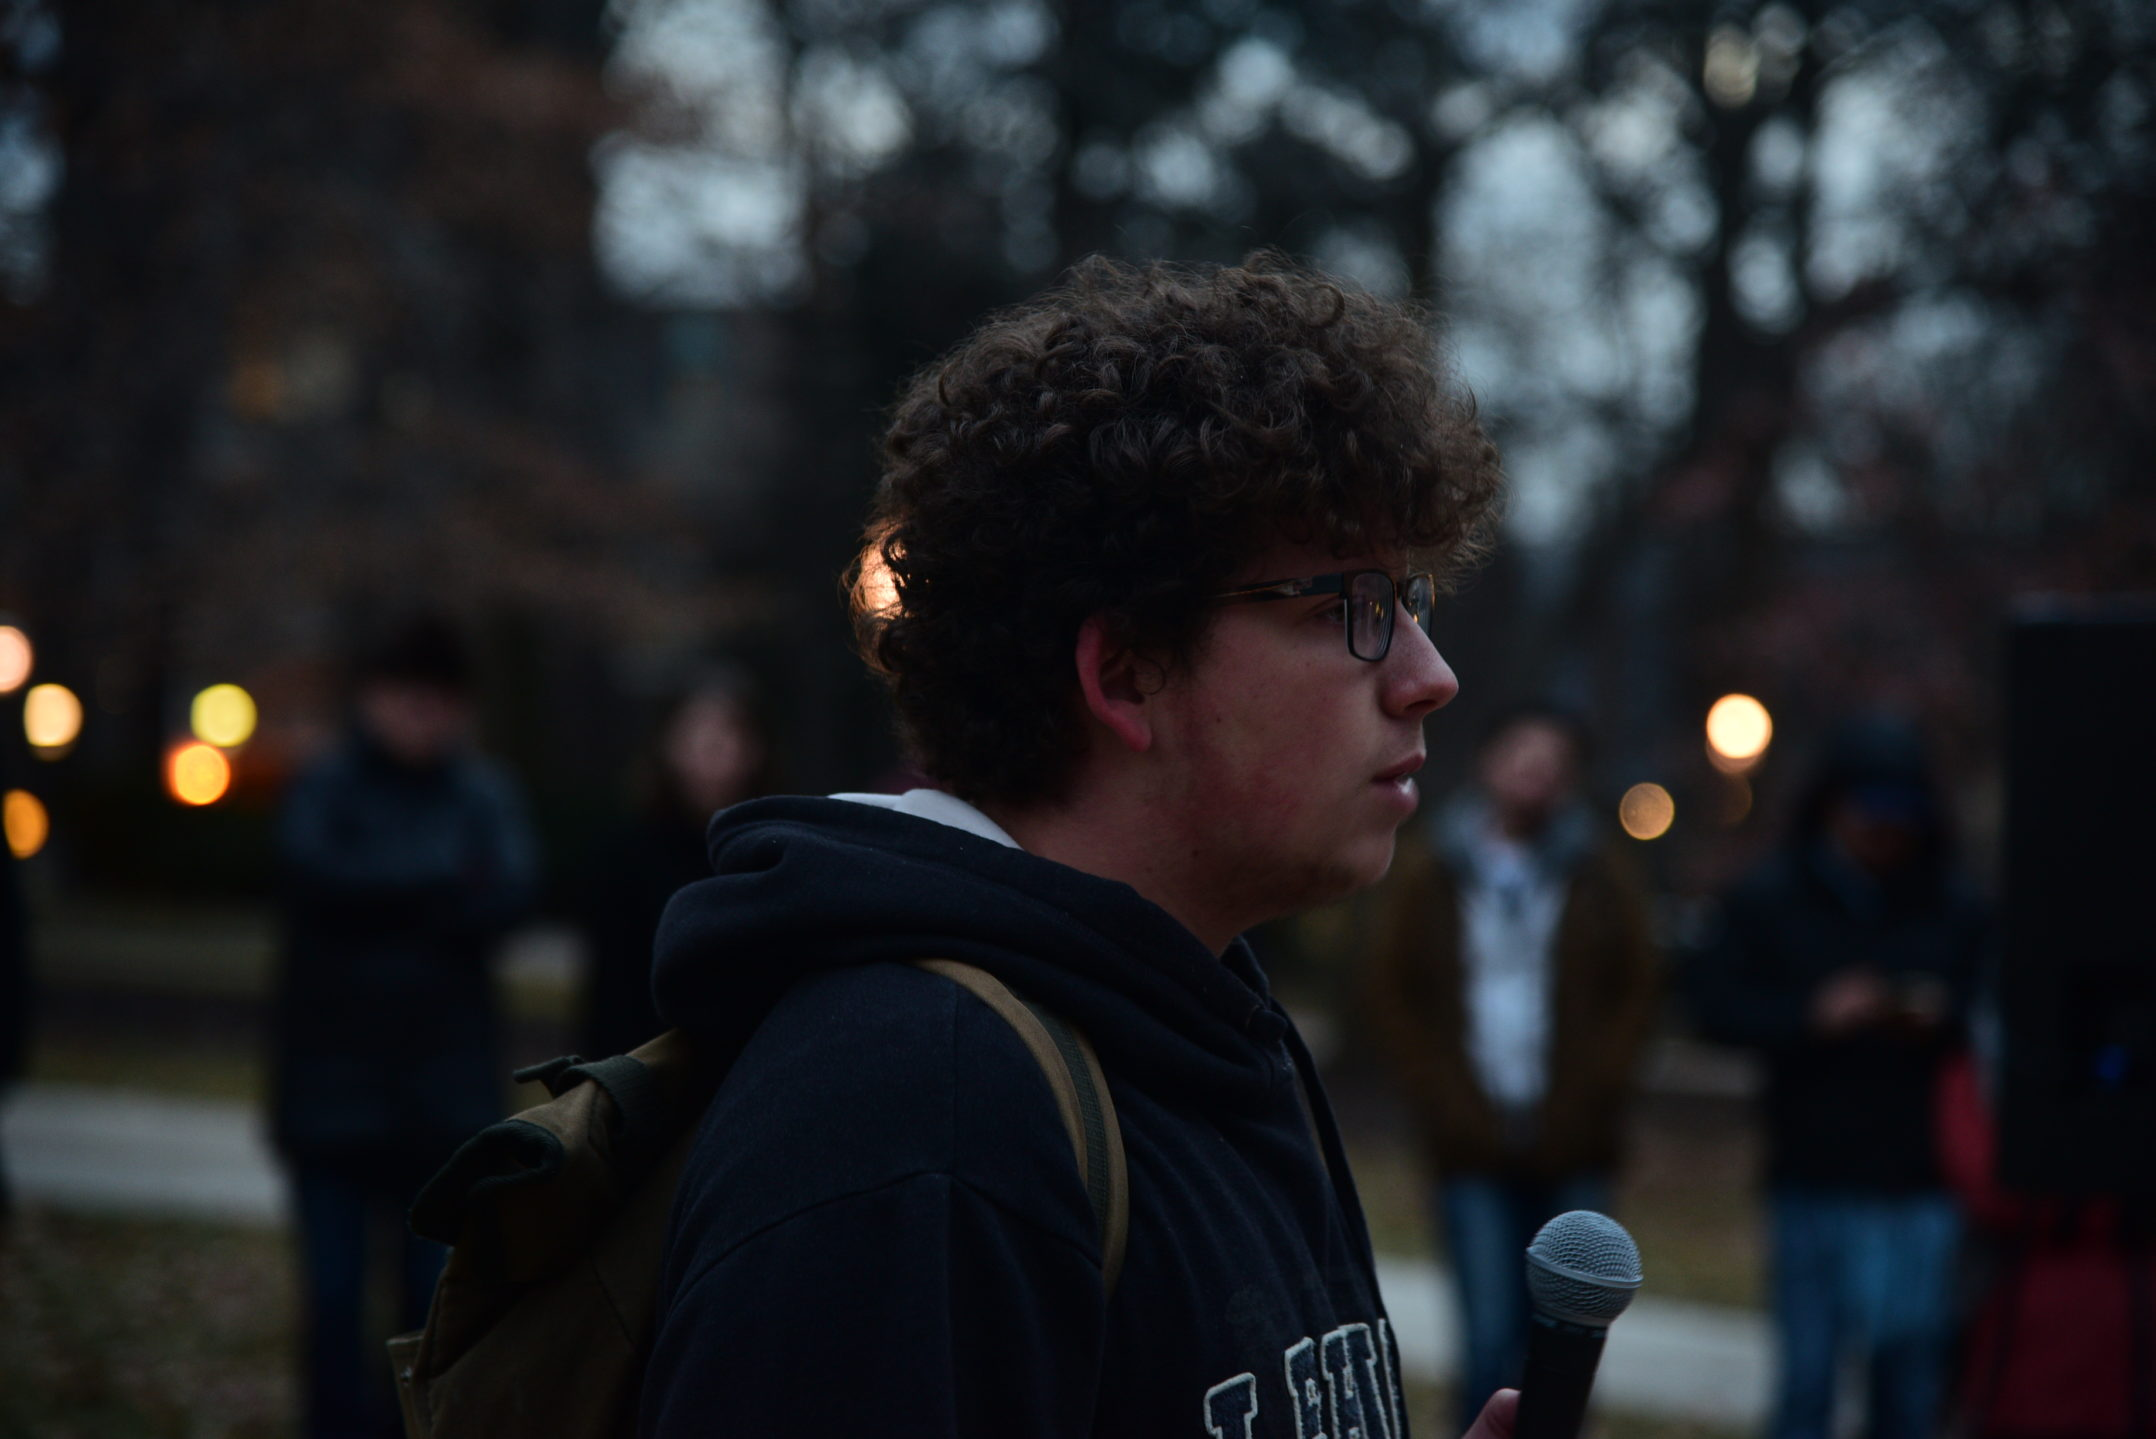 David Kroll, '20, spoke at the rally on his experience with the U.S. treatments of immigrants. He urges people to act and not be passive in the presence of injustice. (Ashley Omoma/B&W Staff)